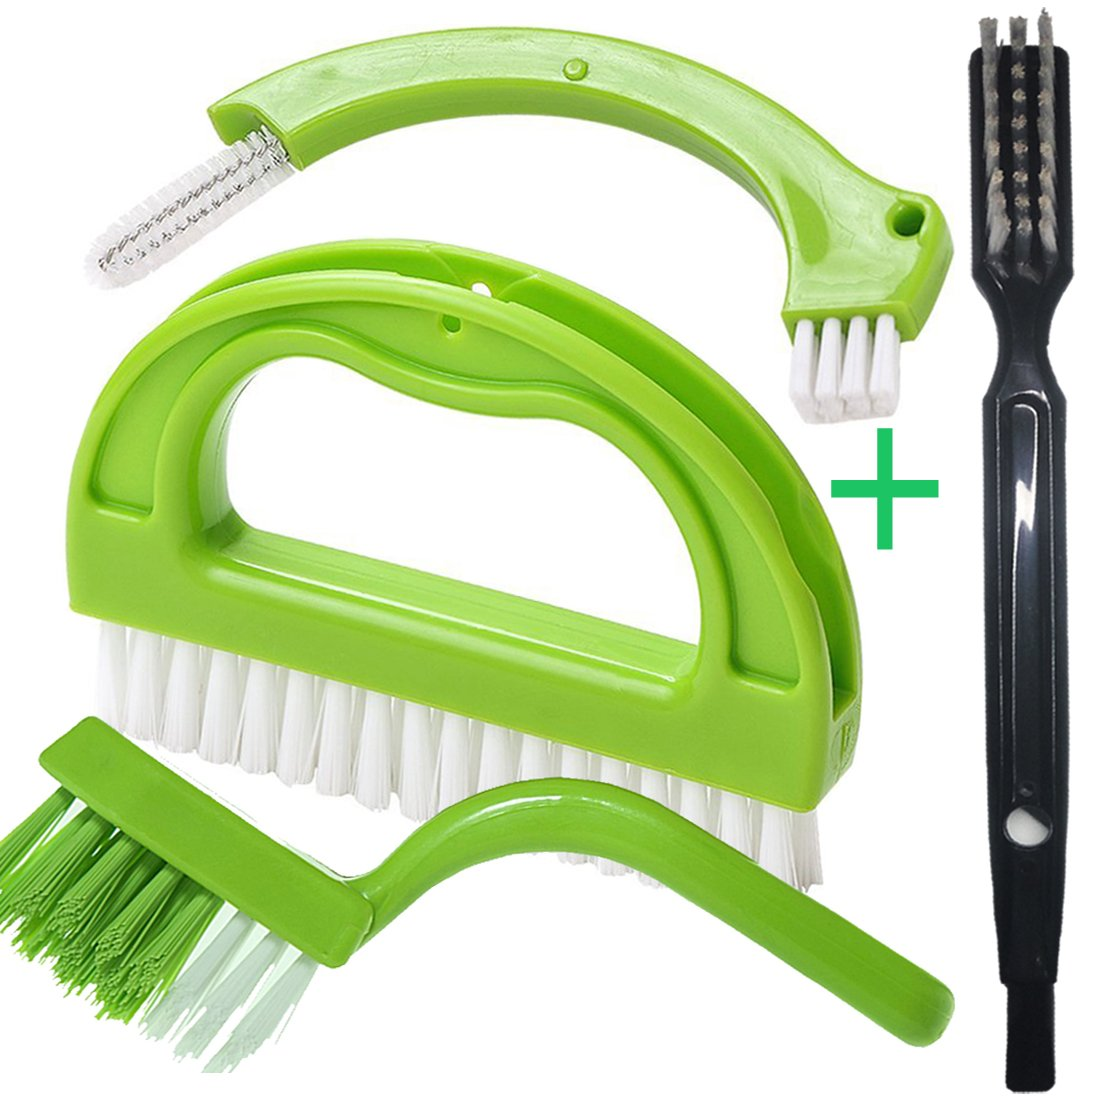 Enyoir Tile Joint Brush 4 in 1 Joint Scrubber Multifunction Kitchen Bathroom Cleaning Brush Grout Mould Cleaner Brush Green